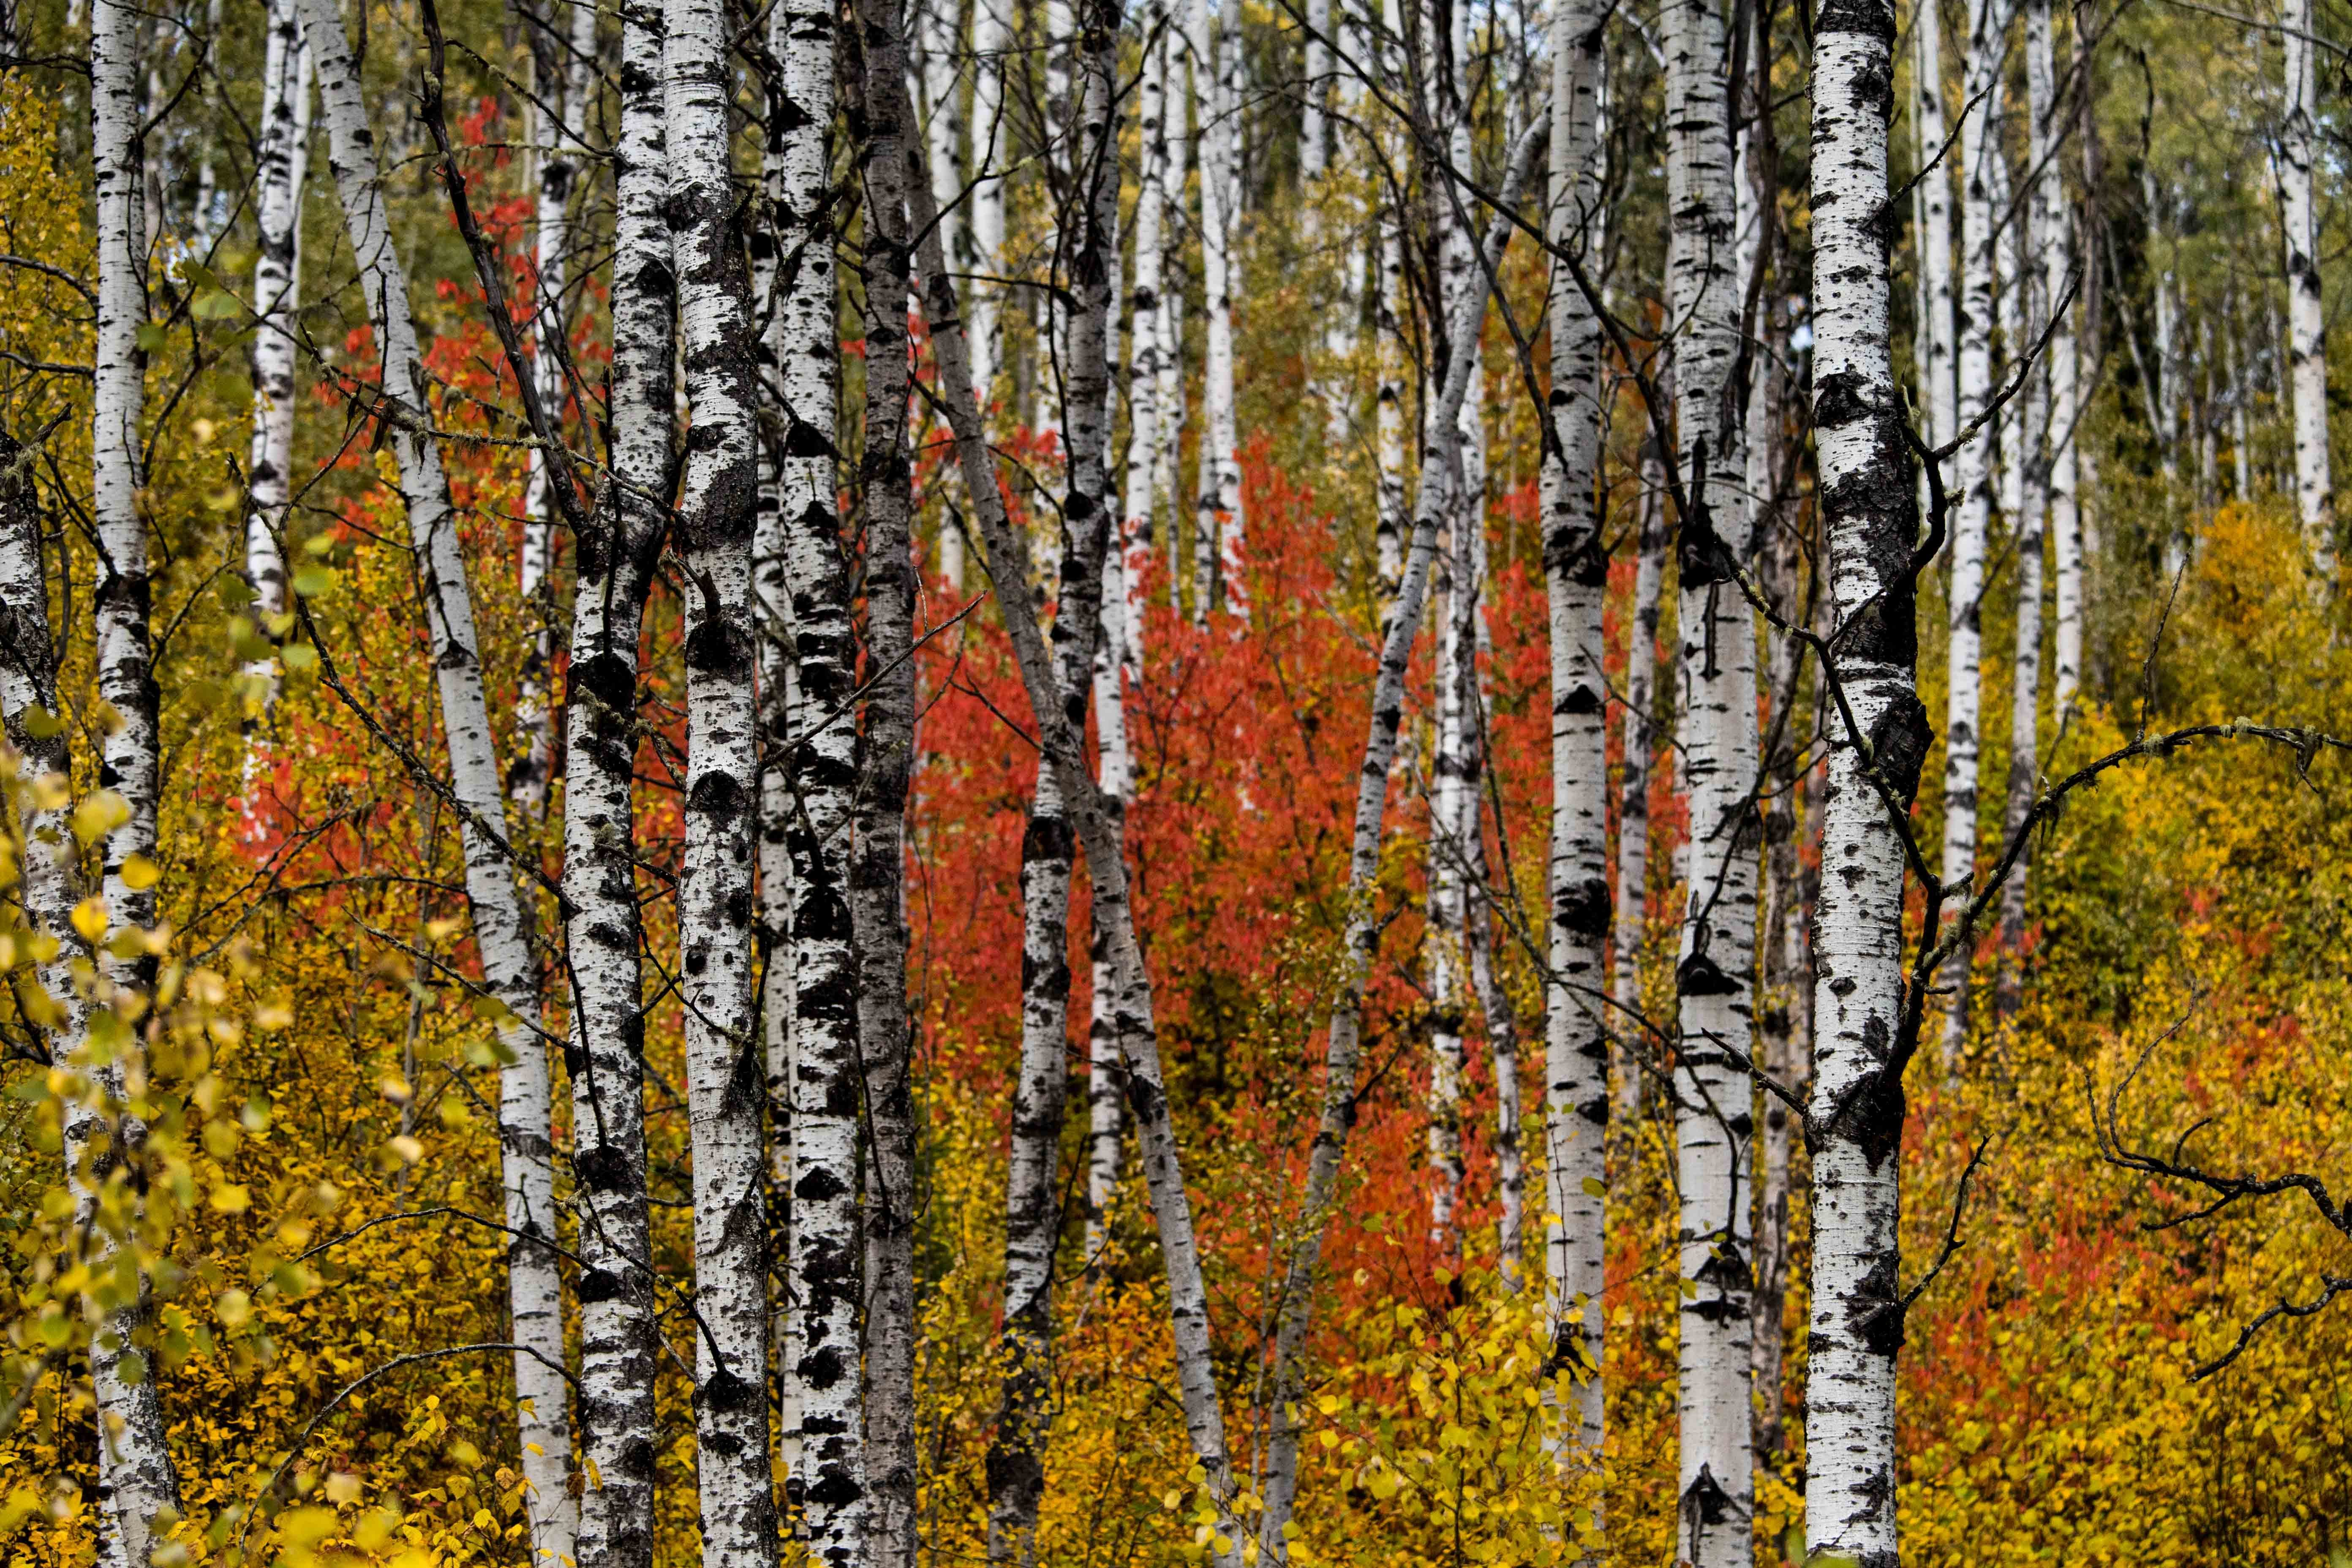 Undated Handout Photo of a birch forest in autumn colours, Cariboo Mountains, British Columbia, Canada.